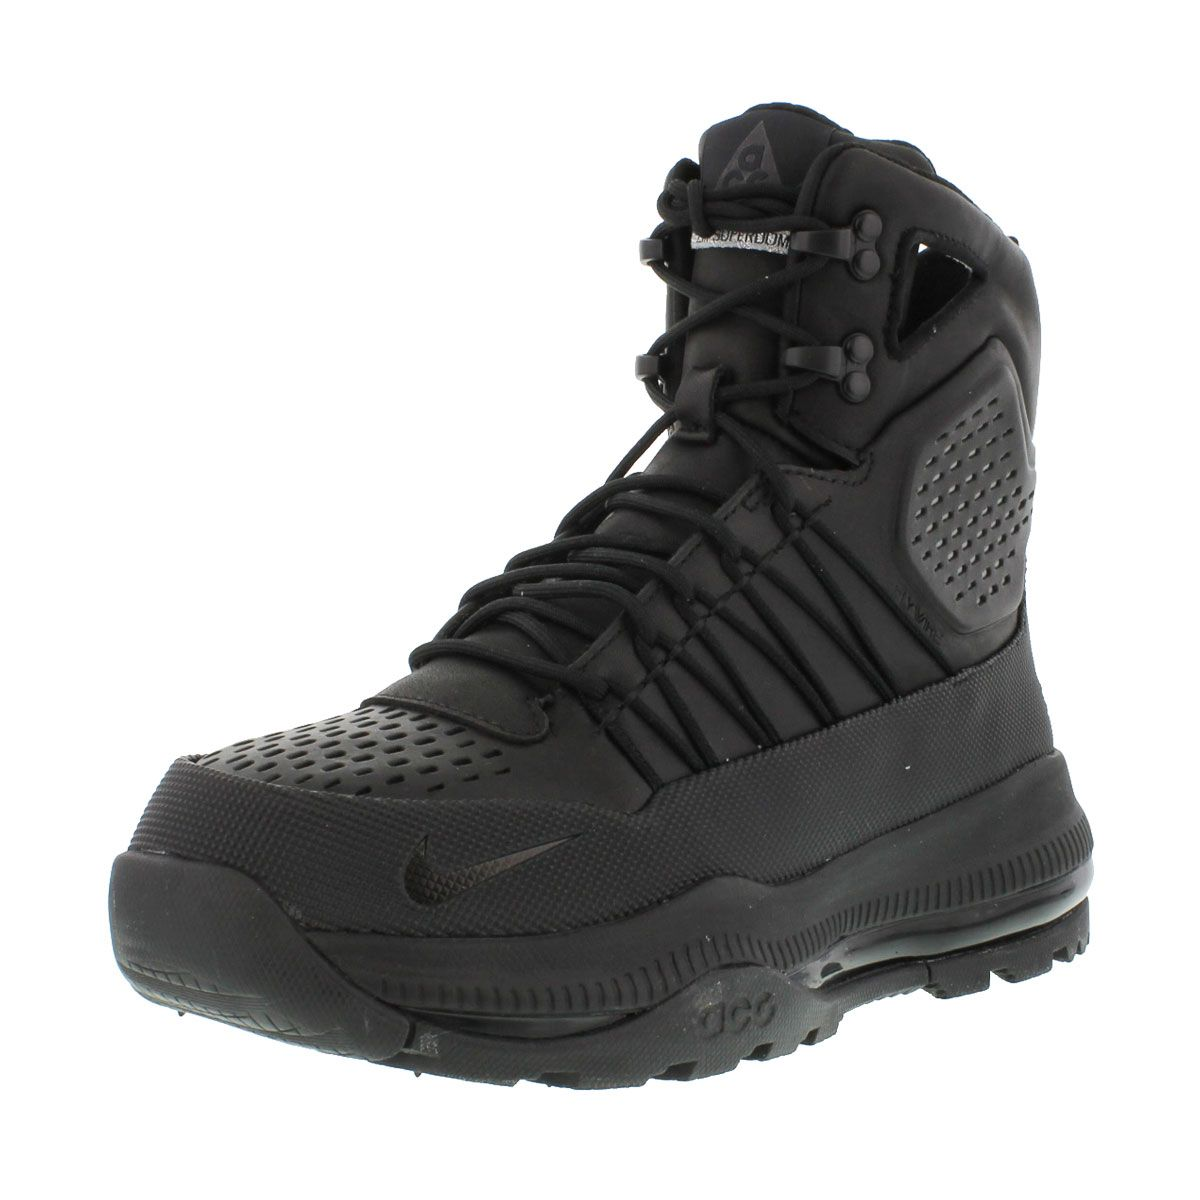 Nike Acg Boots In Store Fashion